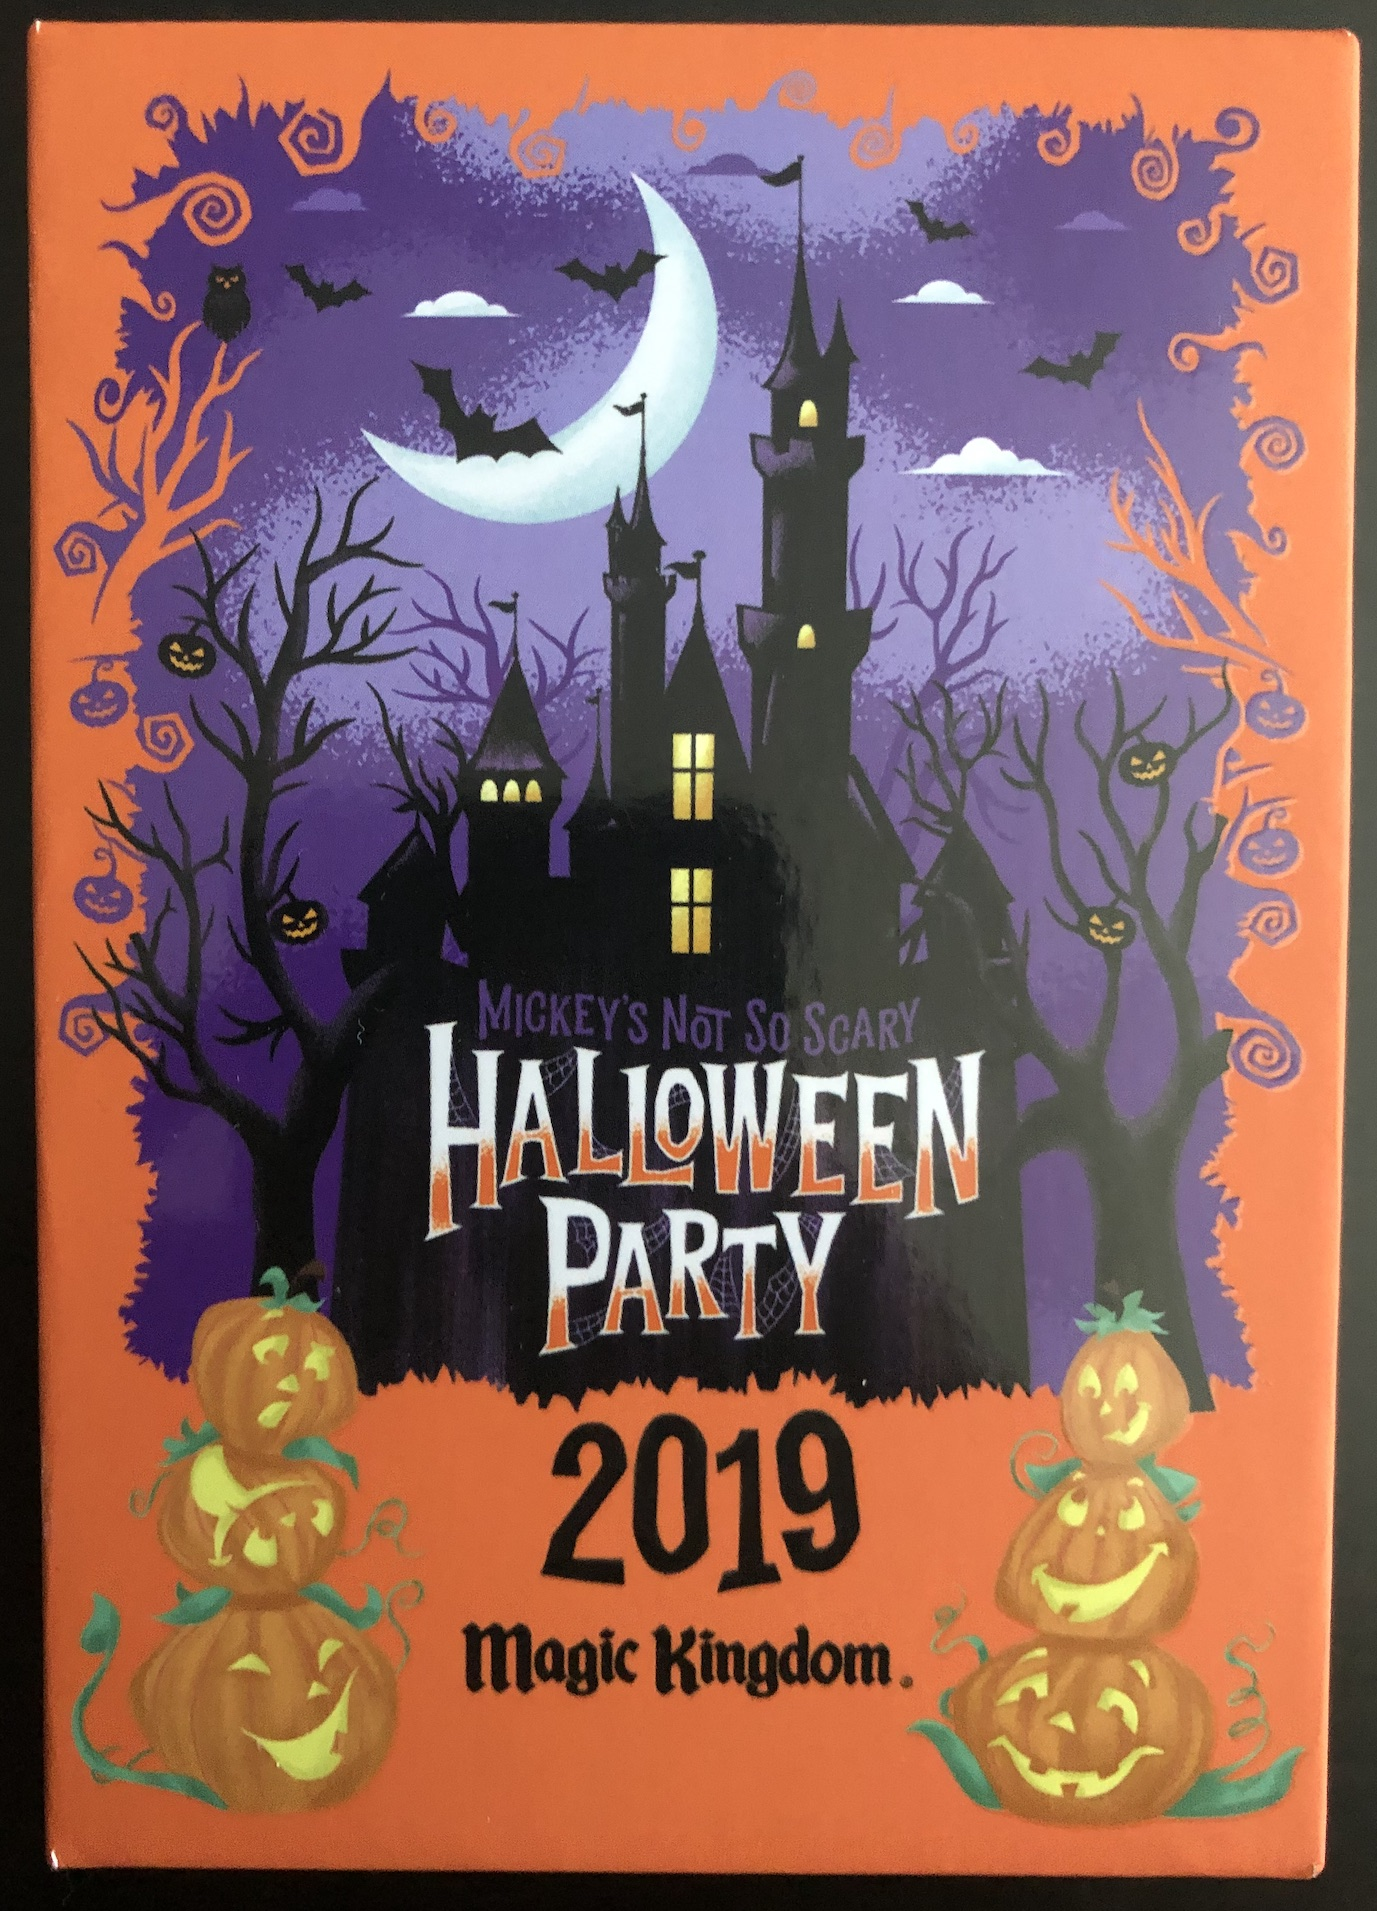 Halloween Disney 2019 Date.2019 Mickey S Not So Scary Halloween Party Limited Edition